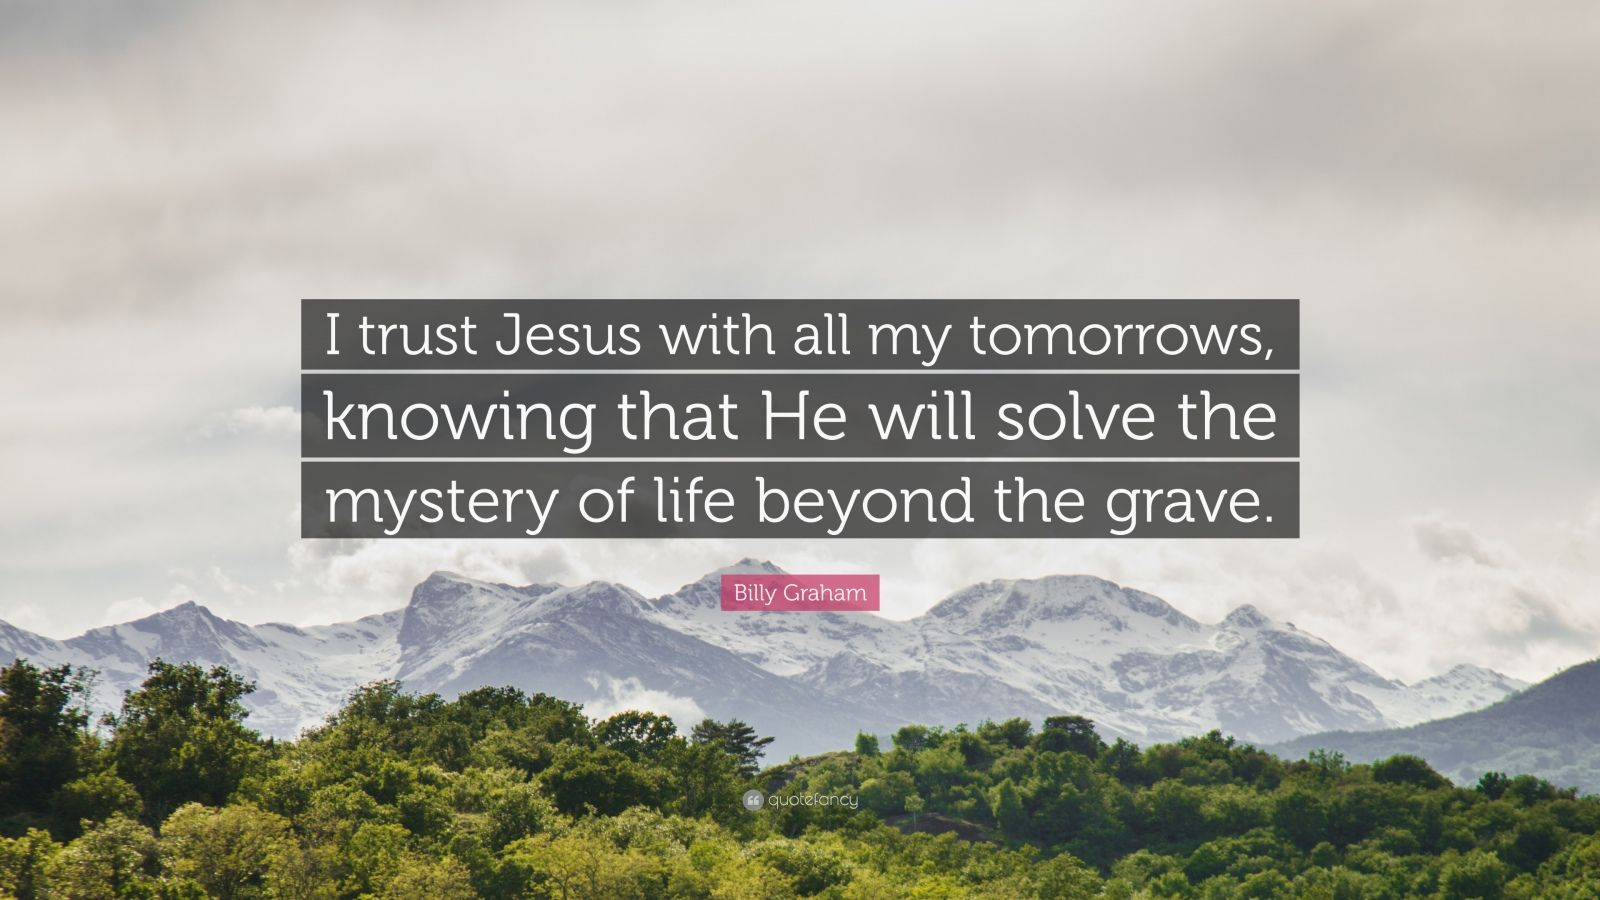 """Billy Graham Quote: """"I trust Jesus with all my tomorrows, knowing that He will solve the mystery of life beyond the grave."""""""